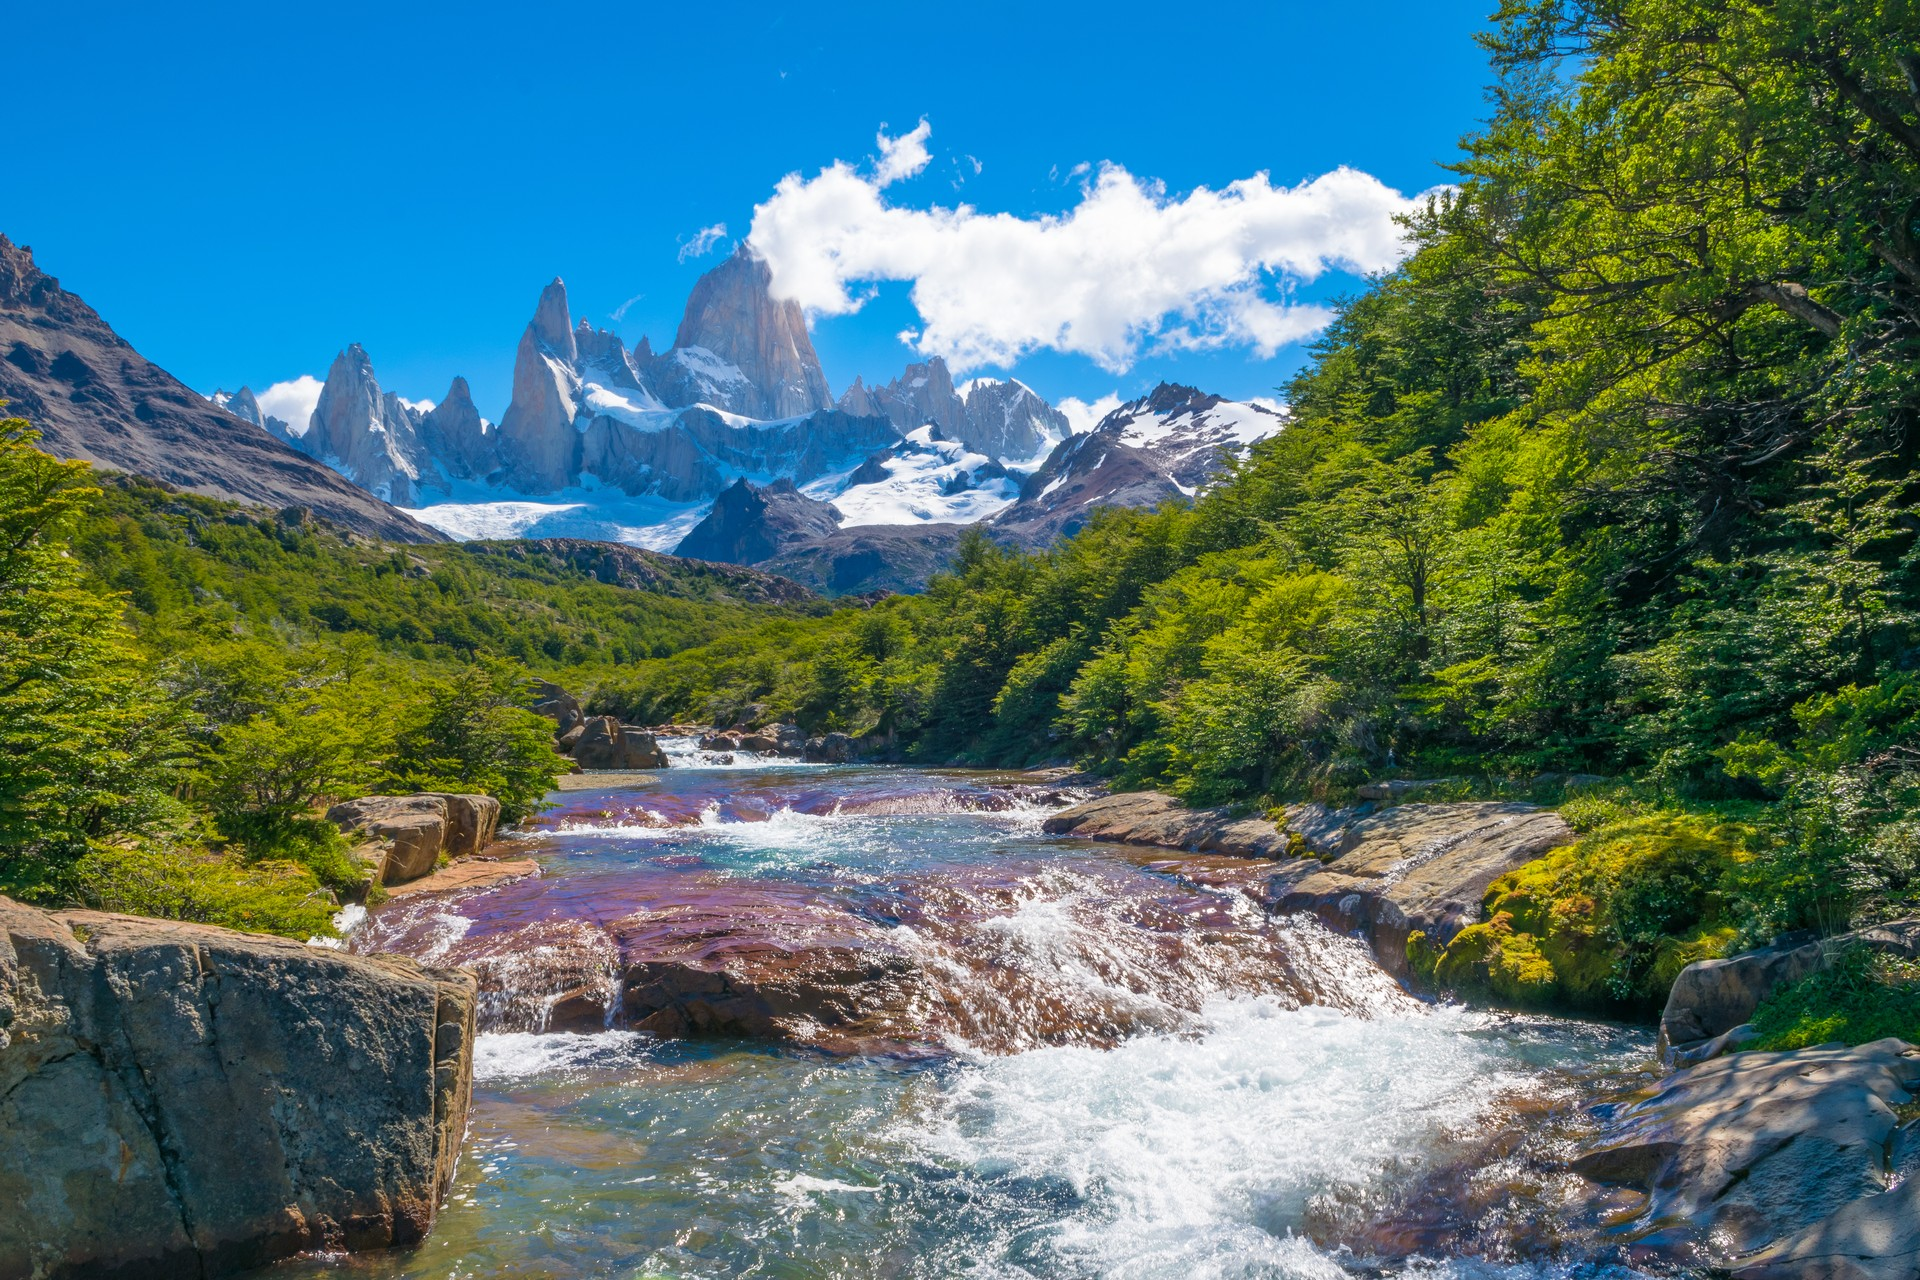 View of Fitz Roy in Patagonia